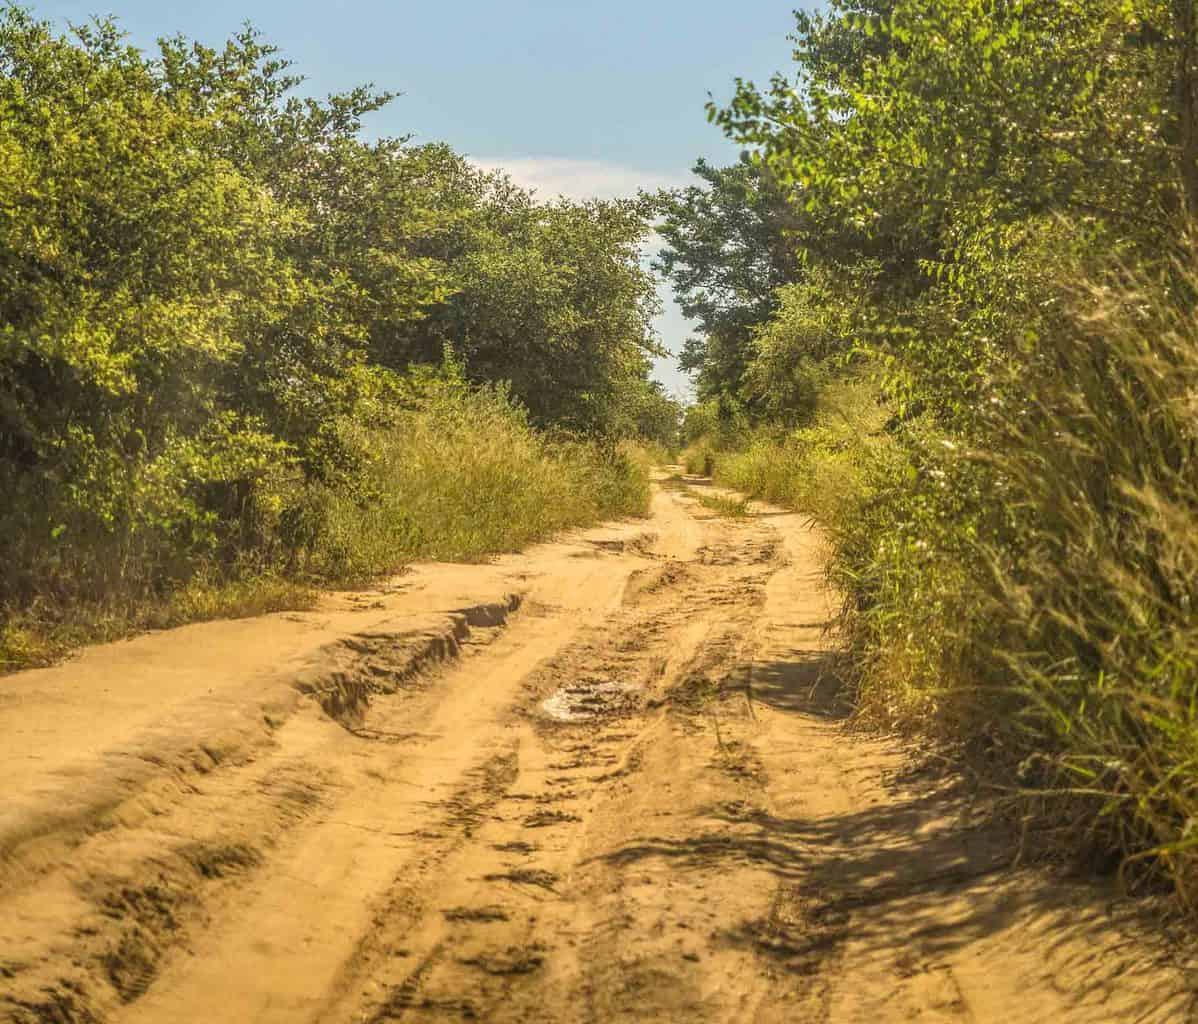 typical road in Madagascar